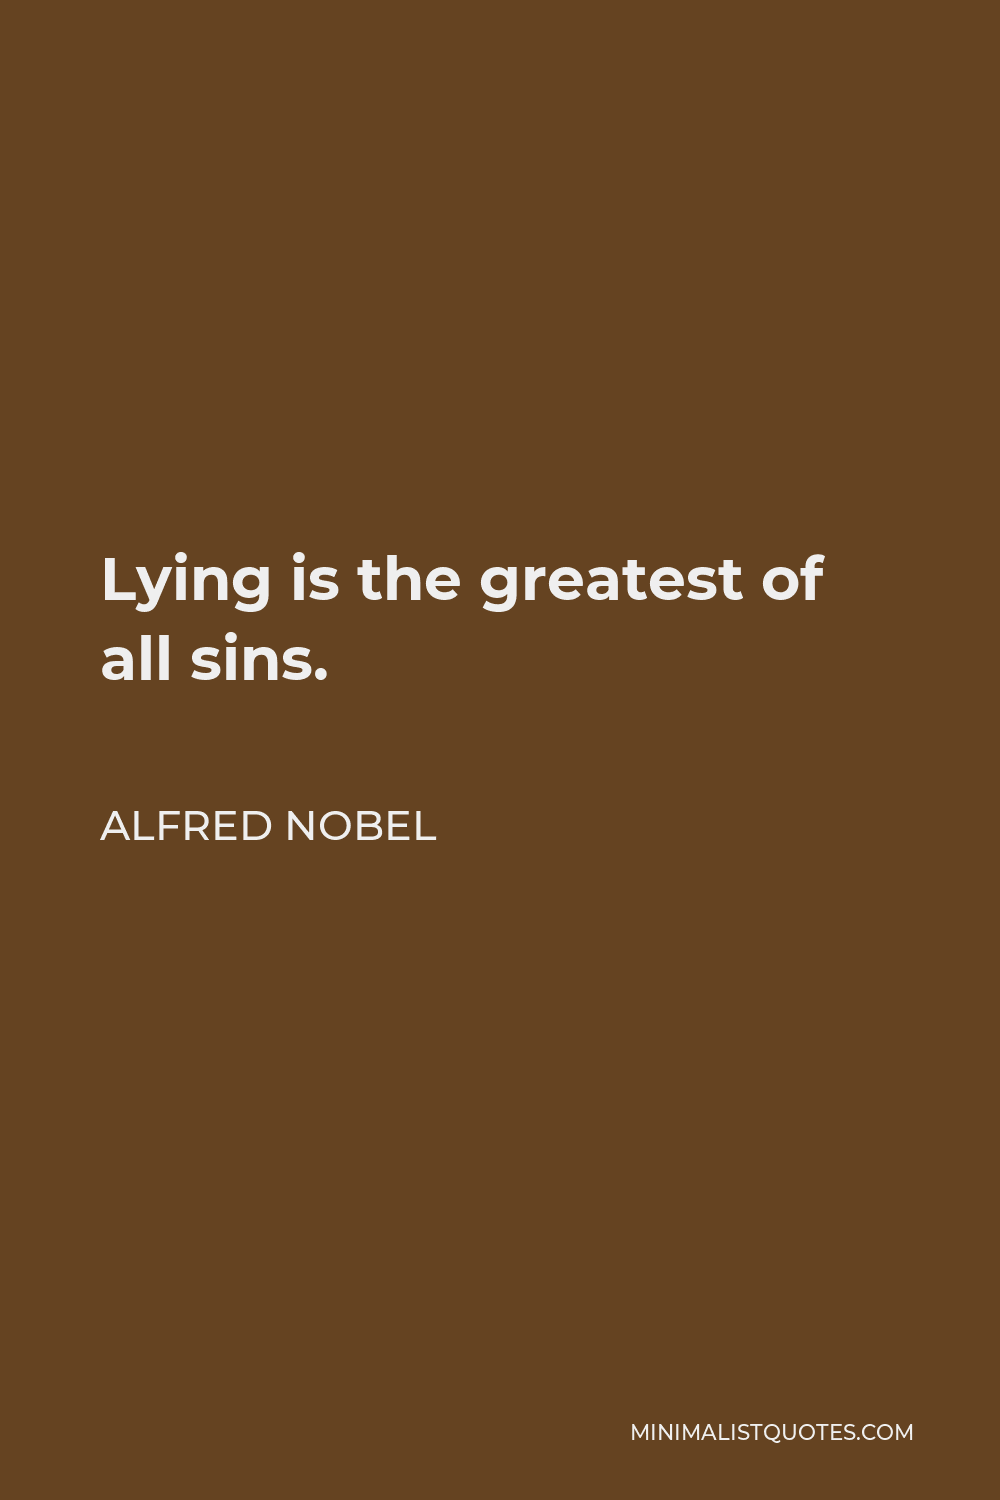 Alfred Nobel Quote - Lying is the greatest of all sins.